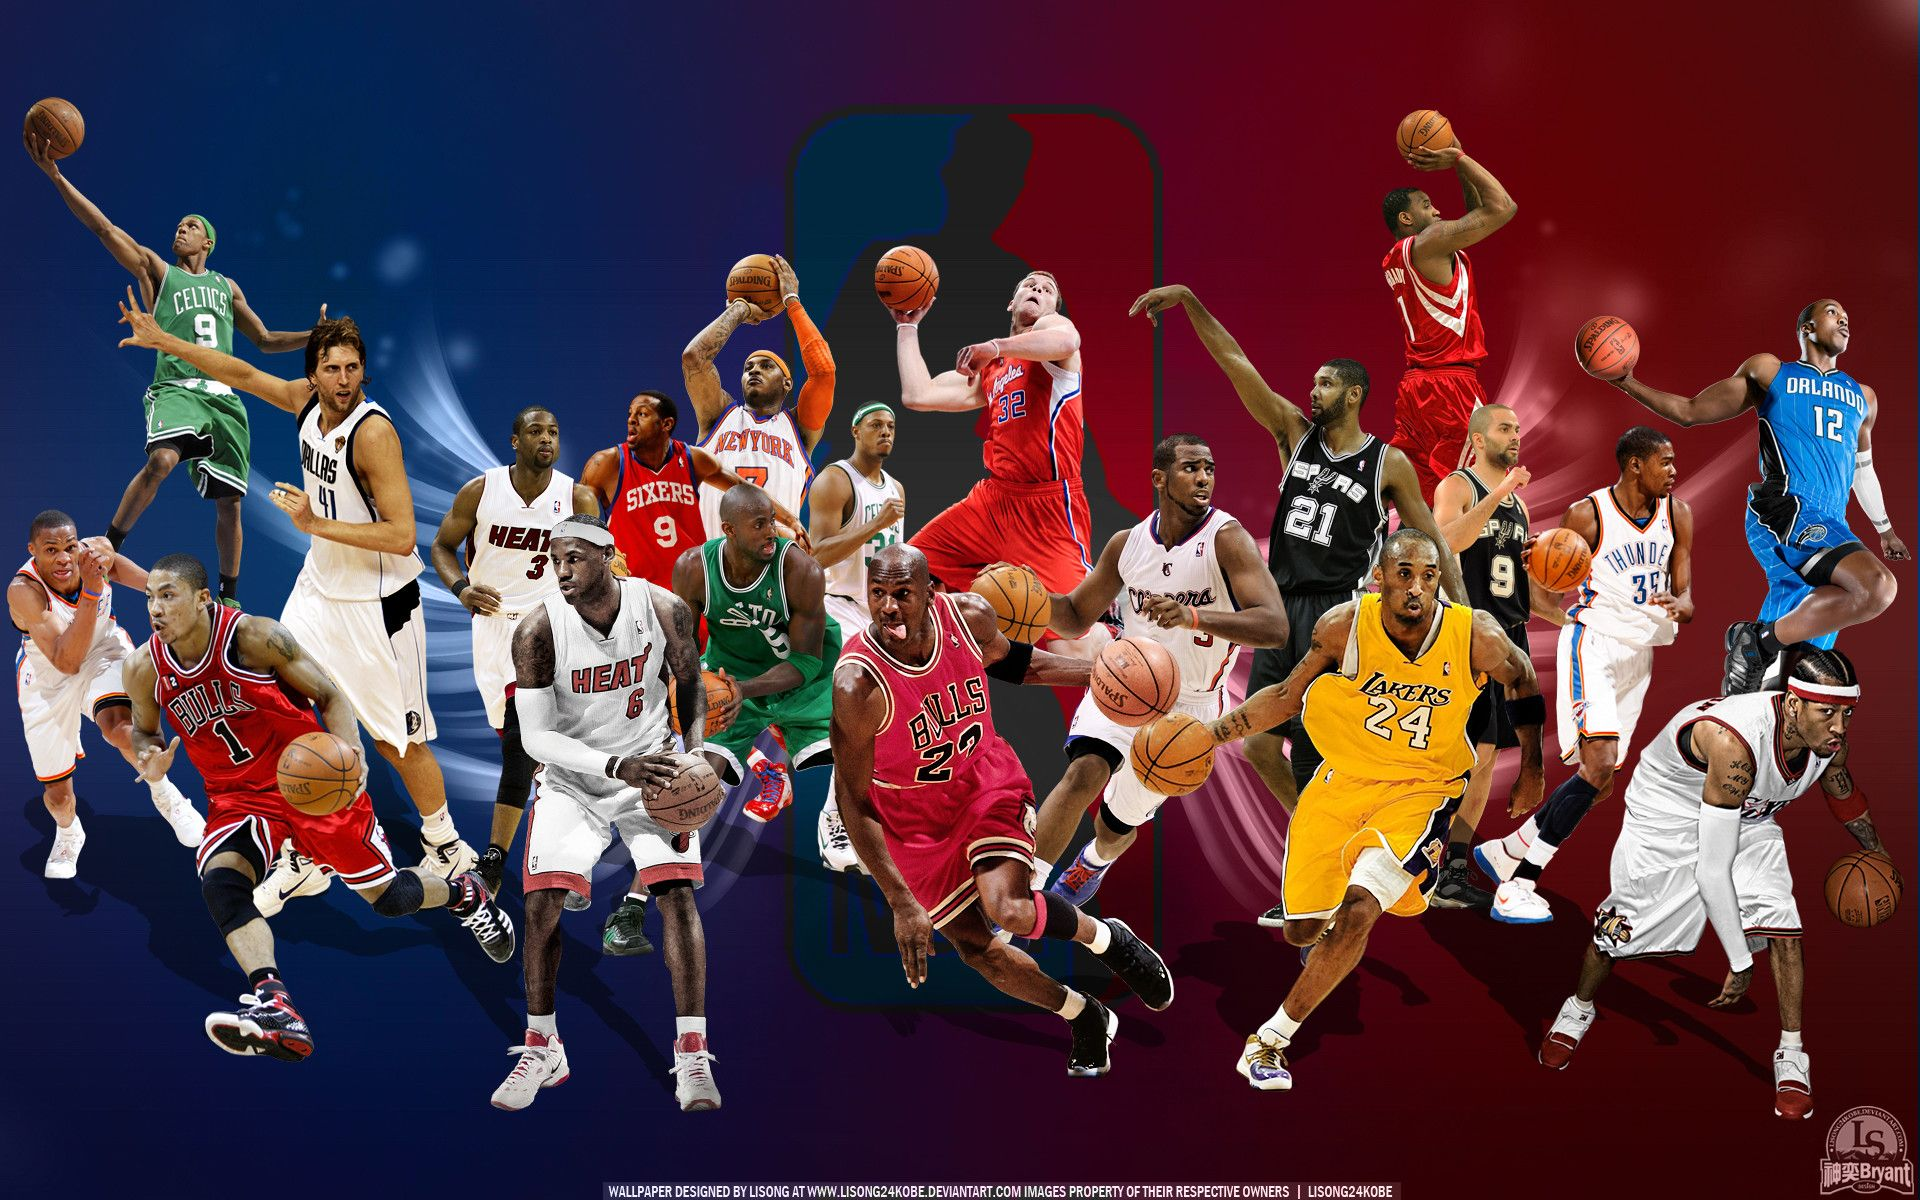 Cool Nba Wallpapers Top Free Cool Nba Backgrounds Wallpaperaccess